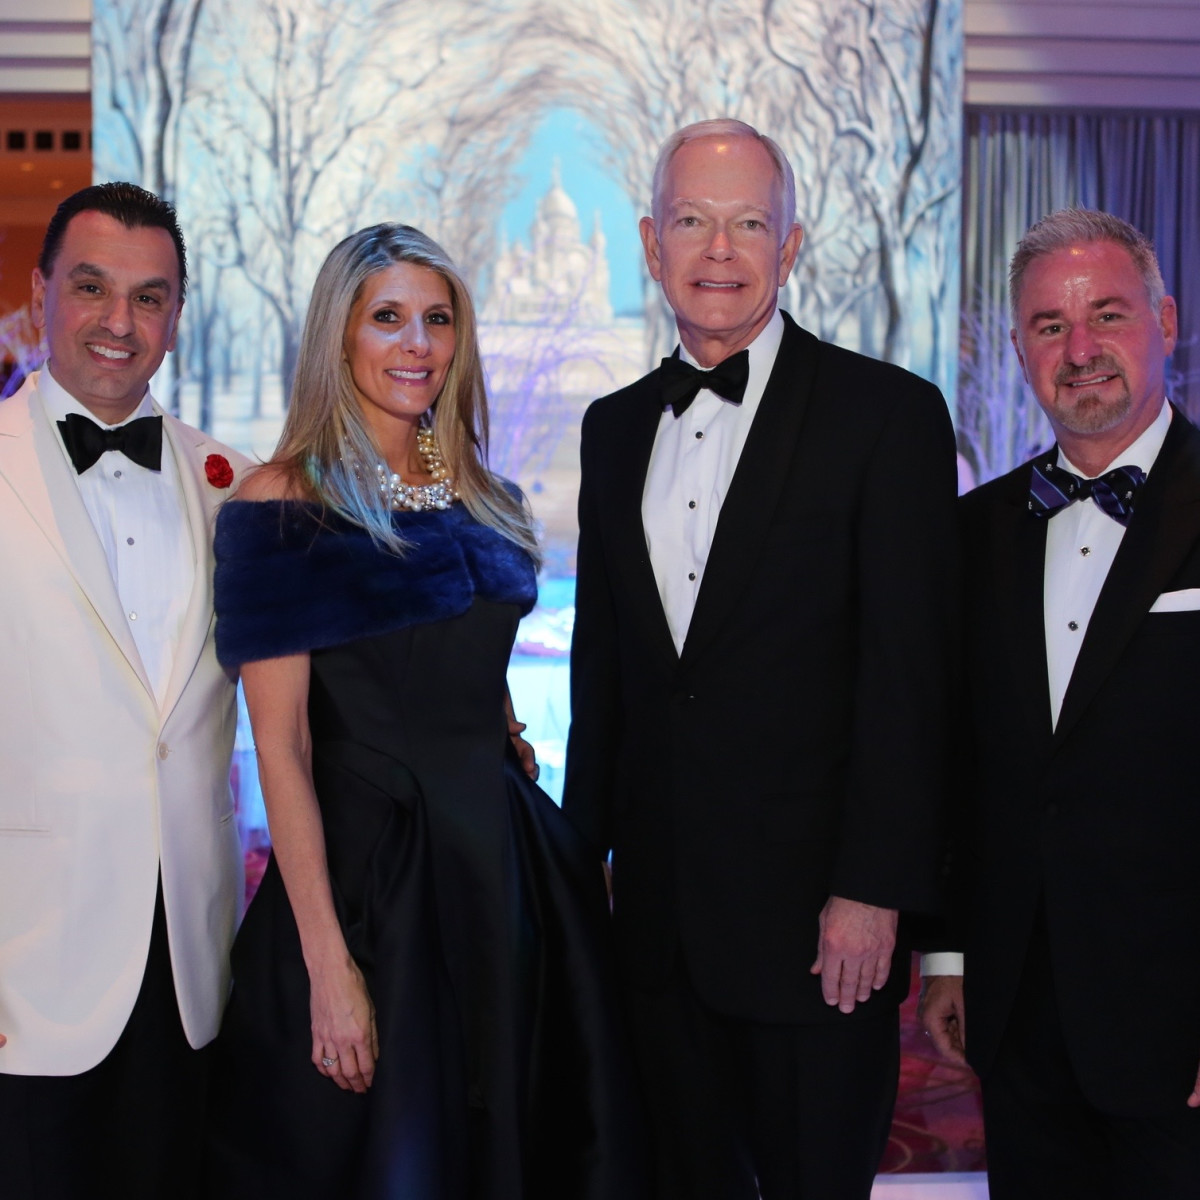 Houston Ballet Ball, Feb. 2016,  Dr. Devinder Bhatia, Gina Bhatia, Jay Jones, Terry Wayne Jones